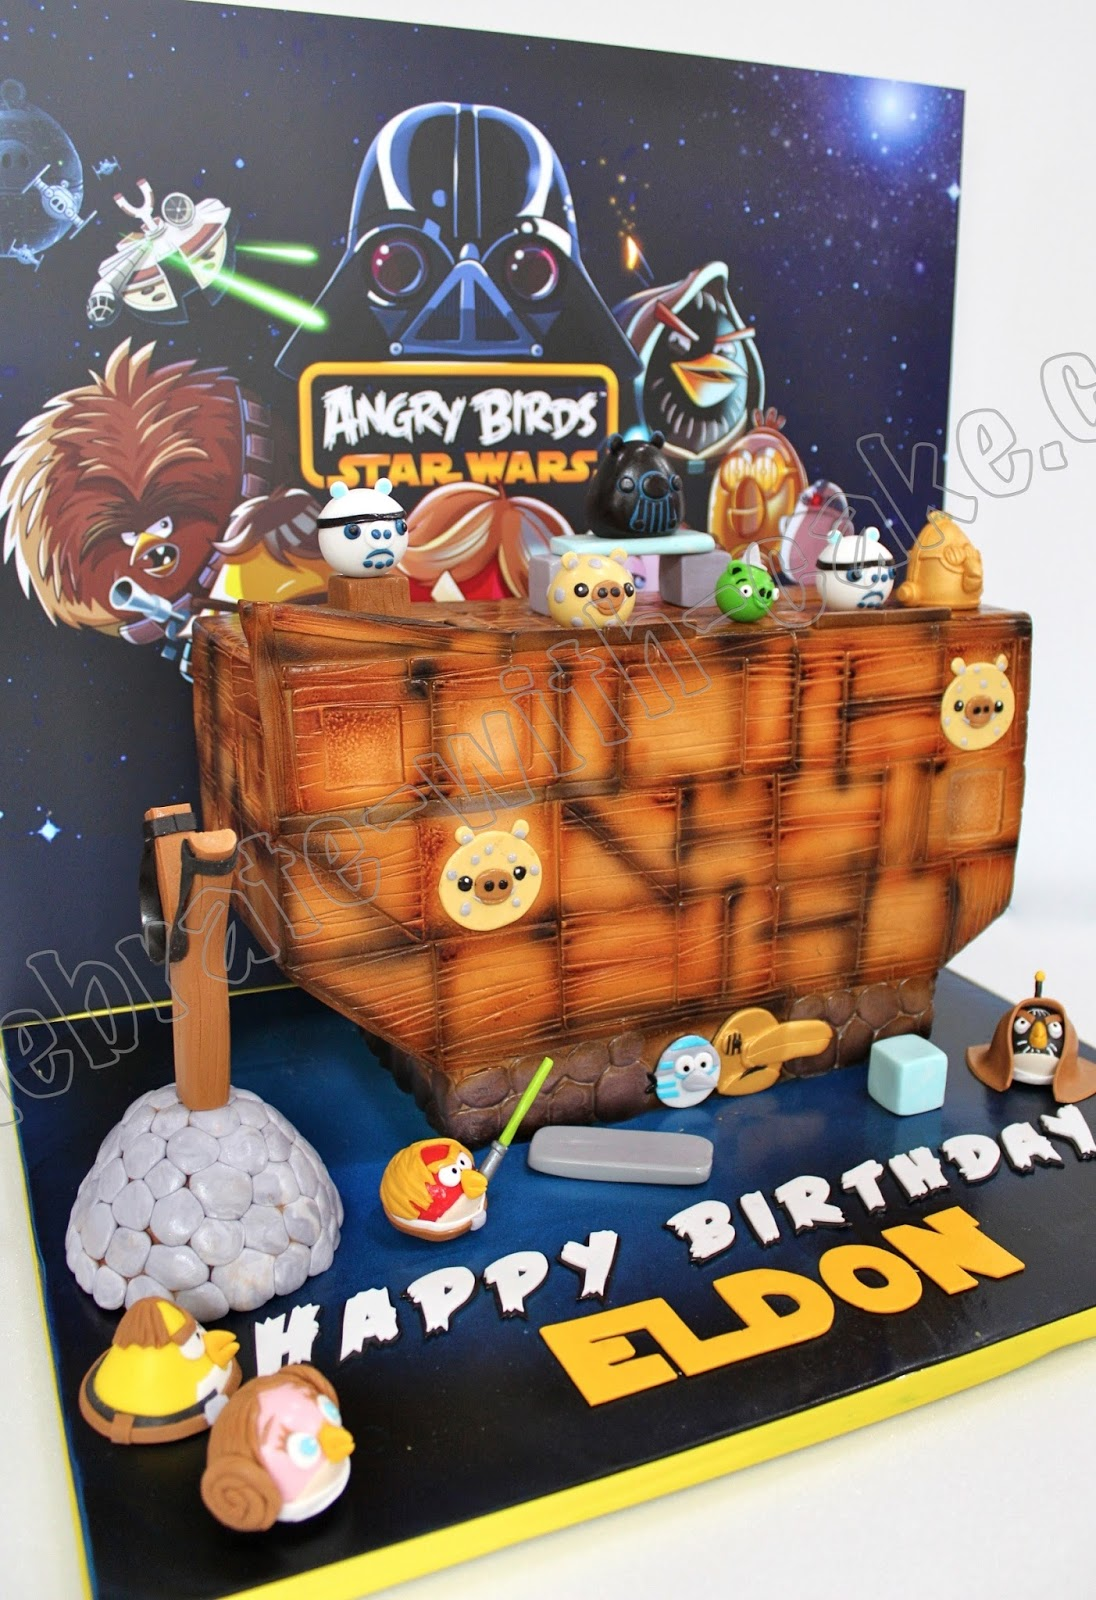 Angry Birds Star Wars Edition Cake